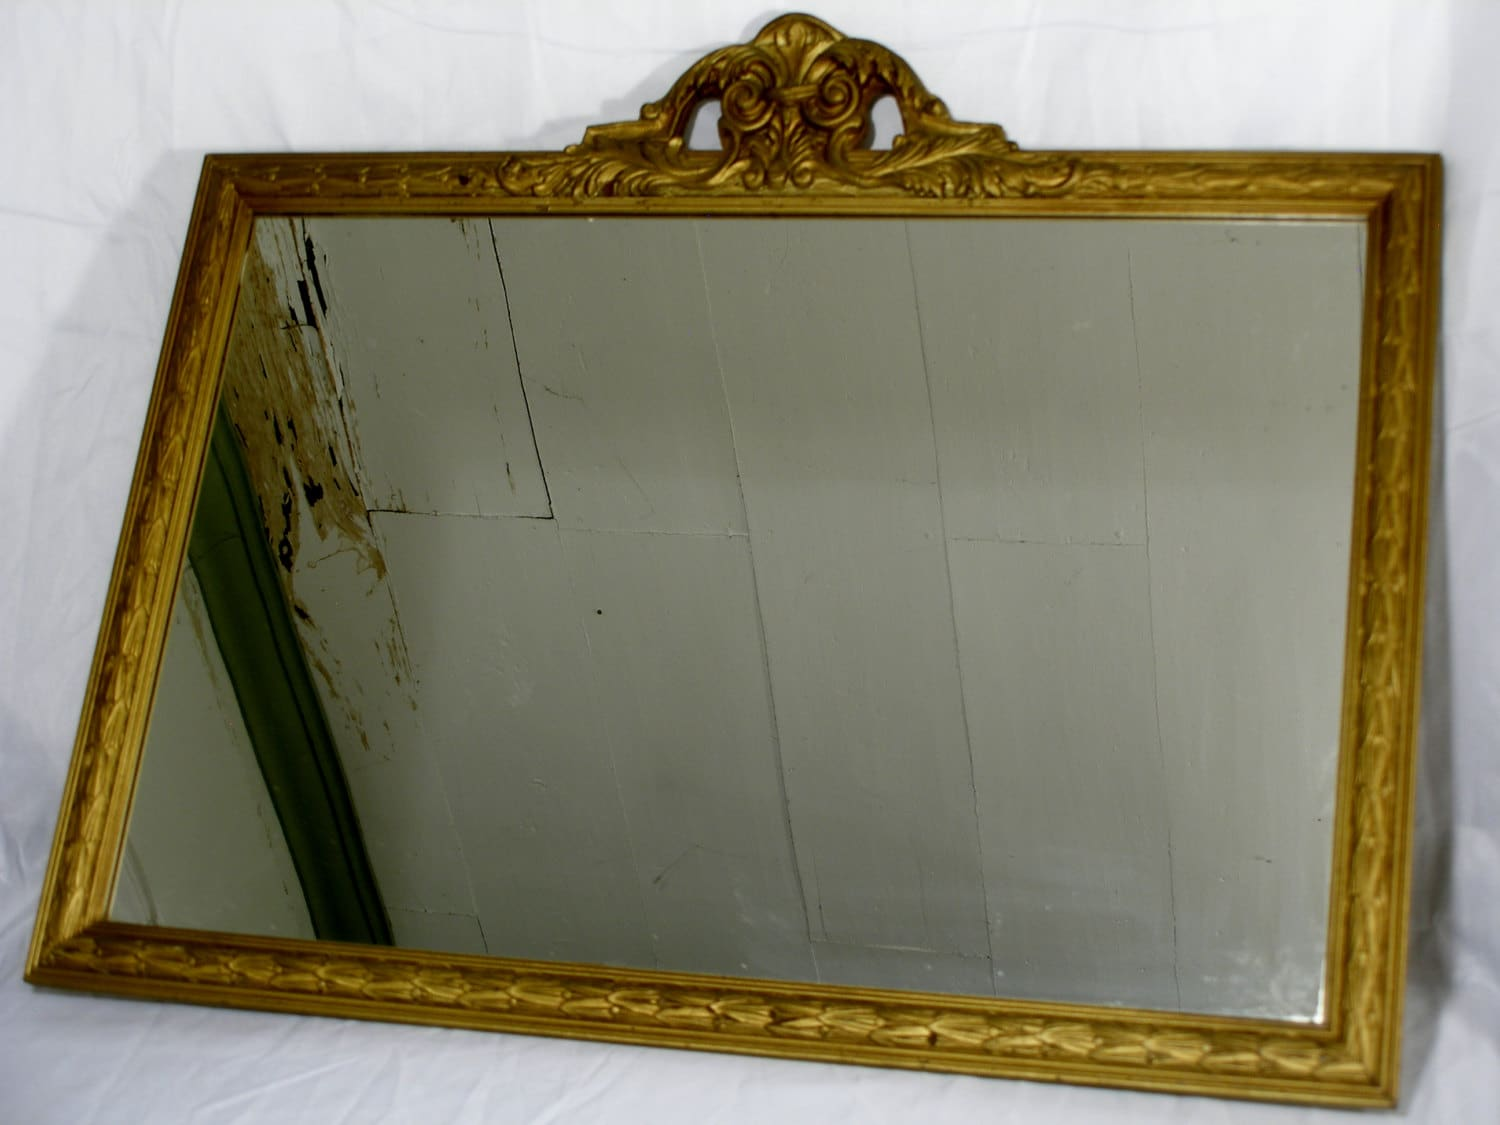 Vintage Gold Painted Mirror old glass antique home décor wheat